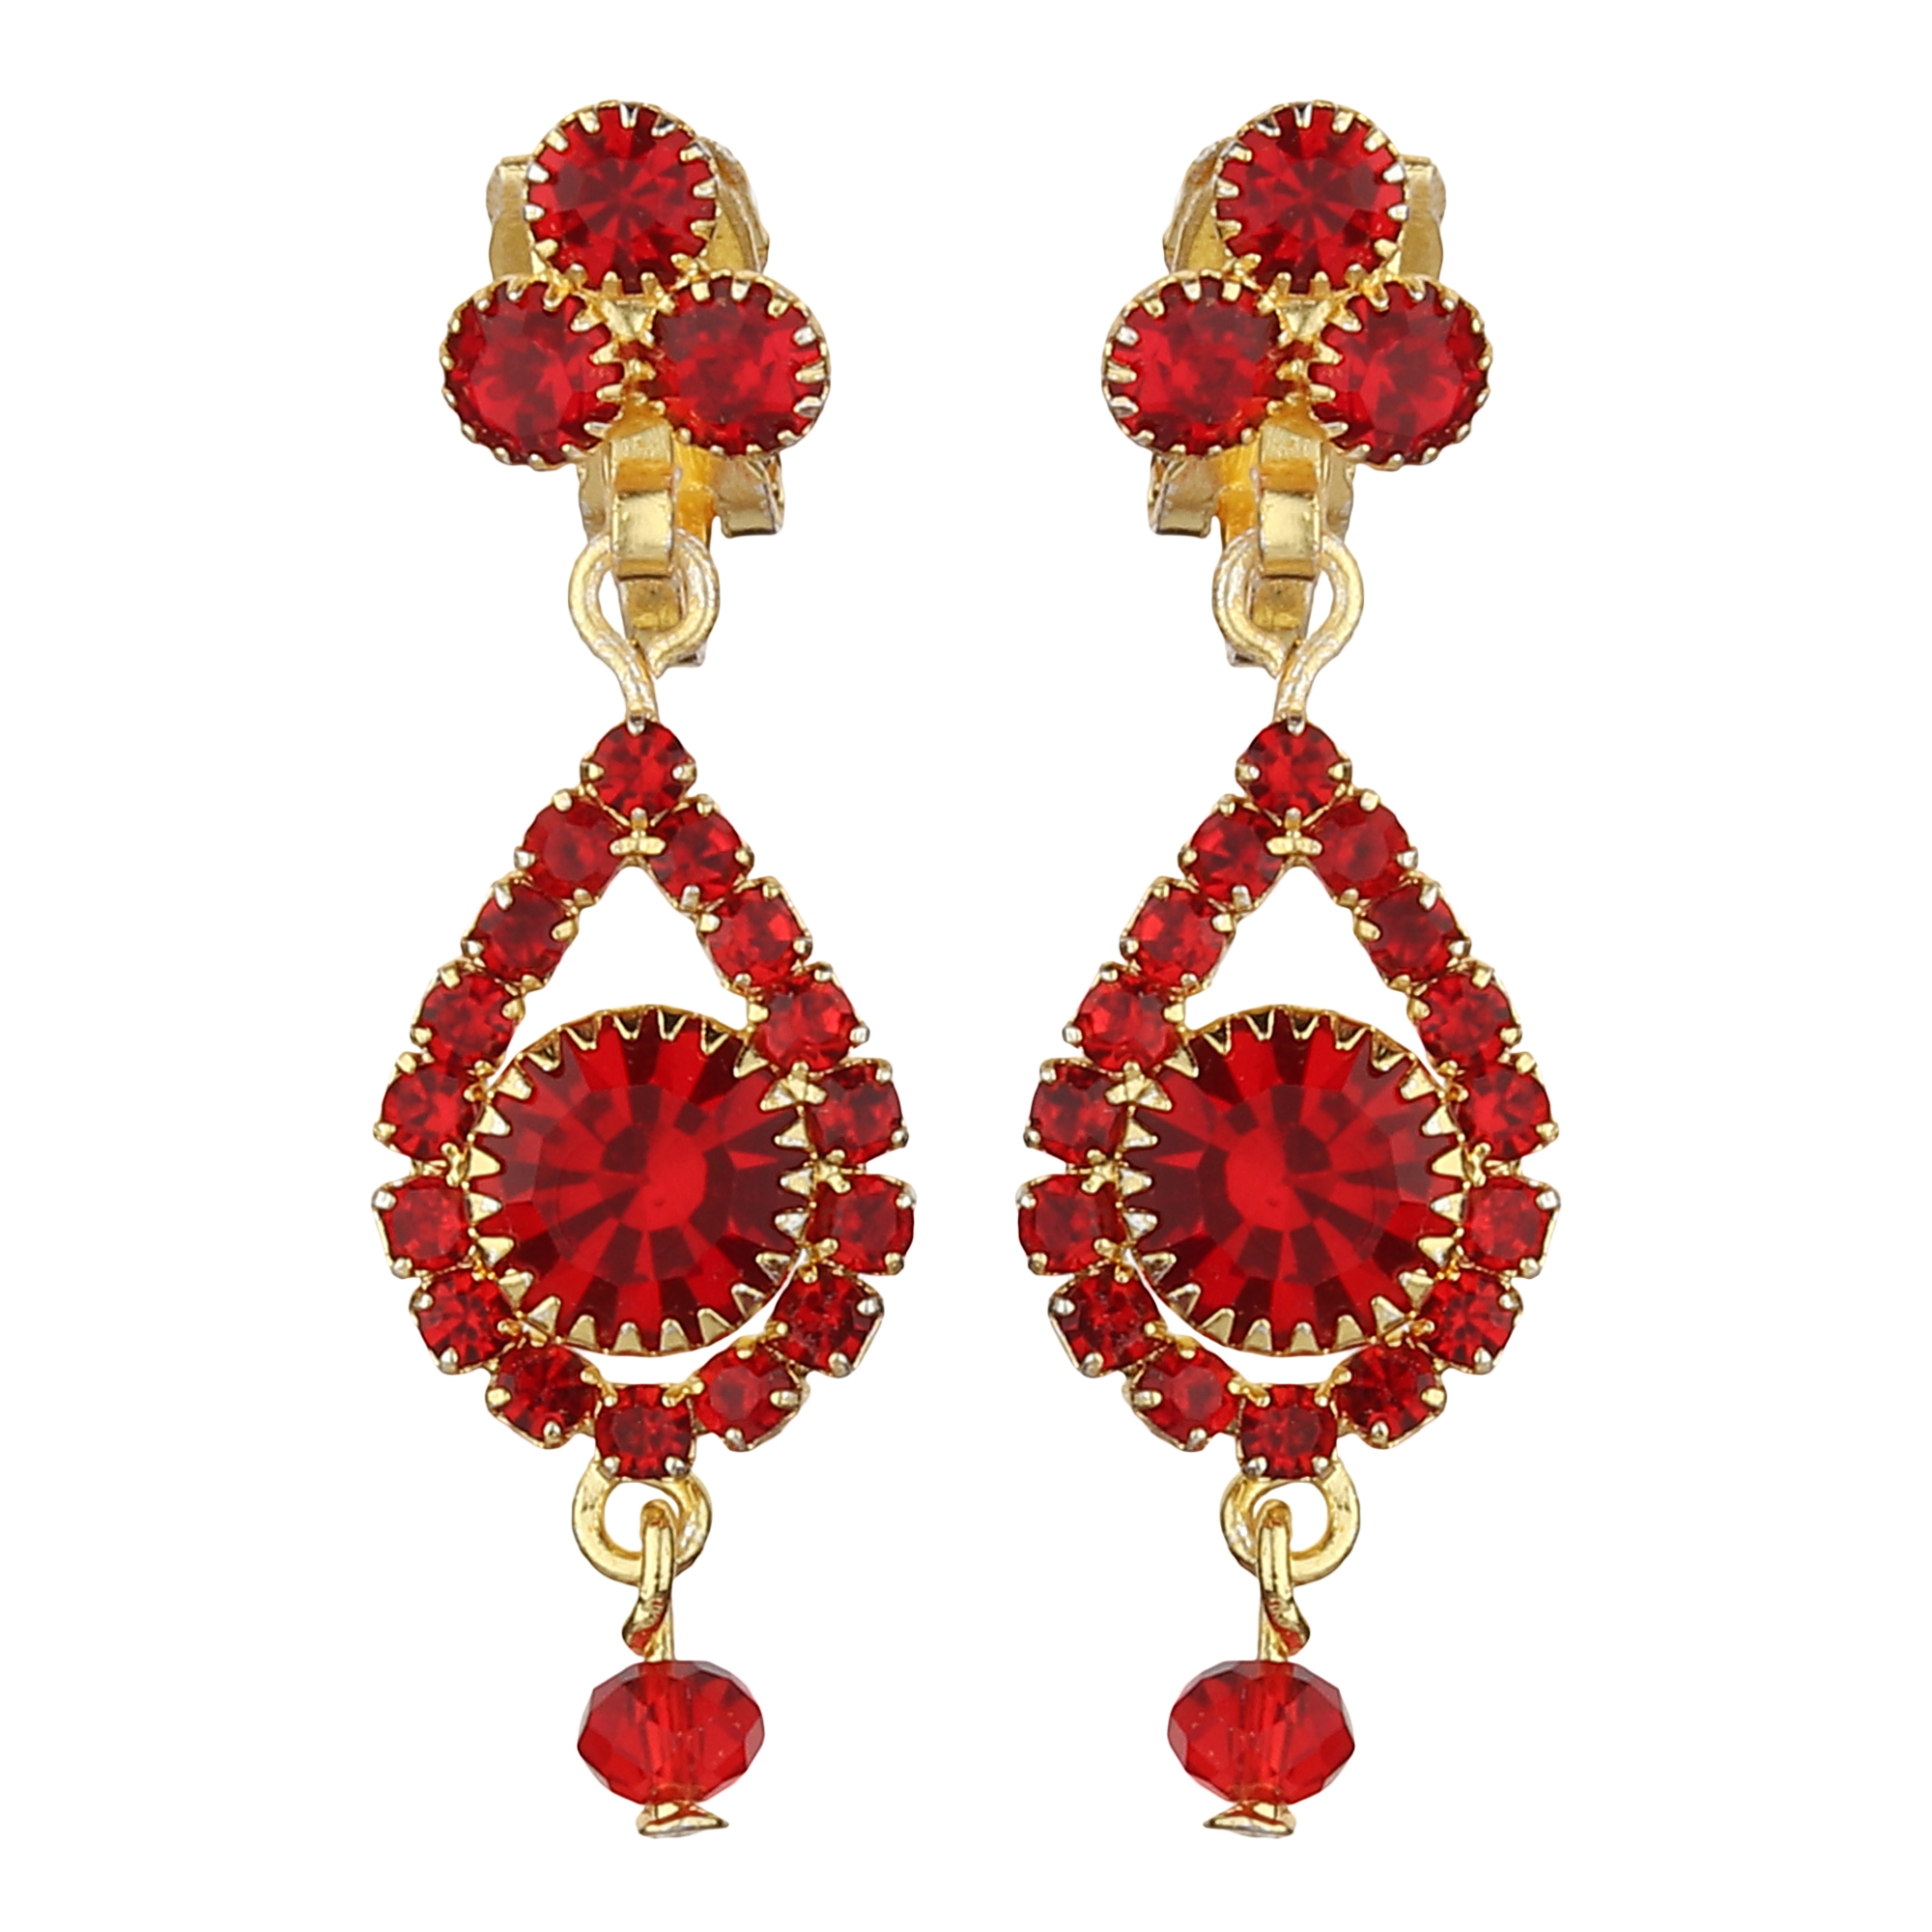 FirstBlush | FirstBlush Clip On Earrings for Non Piearced Ears for Women & Girls; Plating: Gold; Color: Red; Size: 35 X 11mm; Wt.: 4gm. (MIEC104M171)